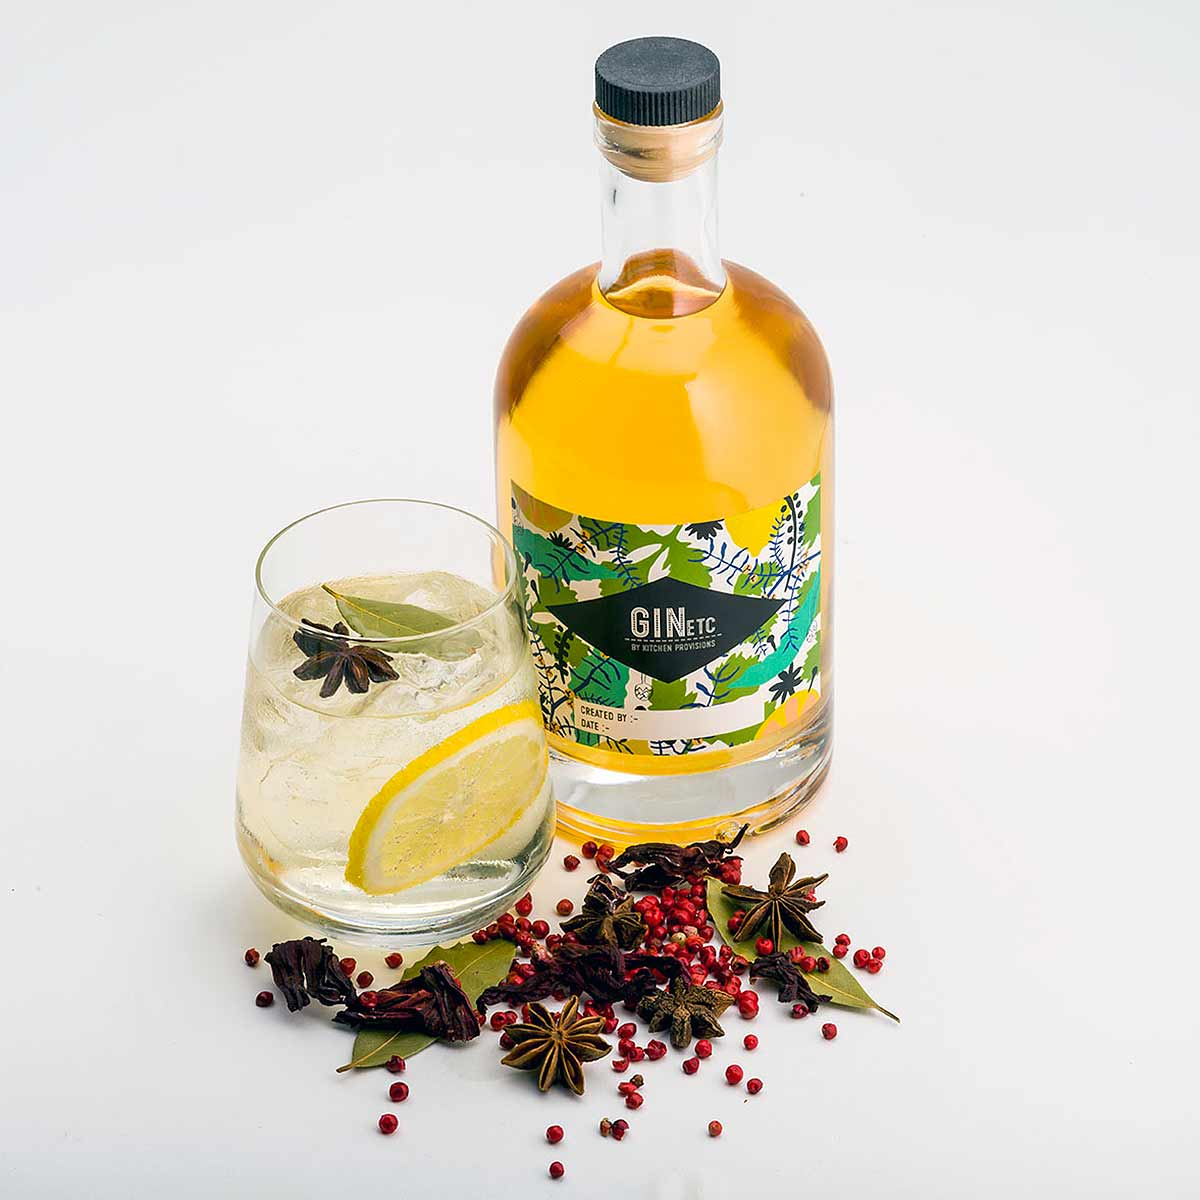 bottle and filled glass with botanicals on white background